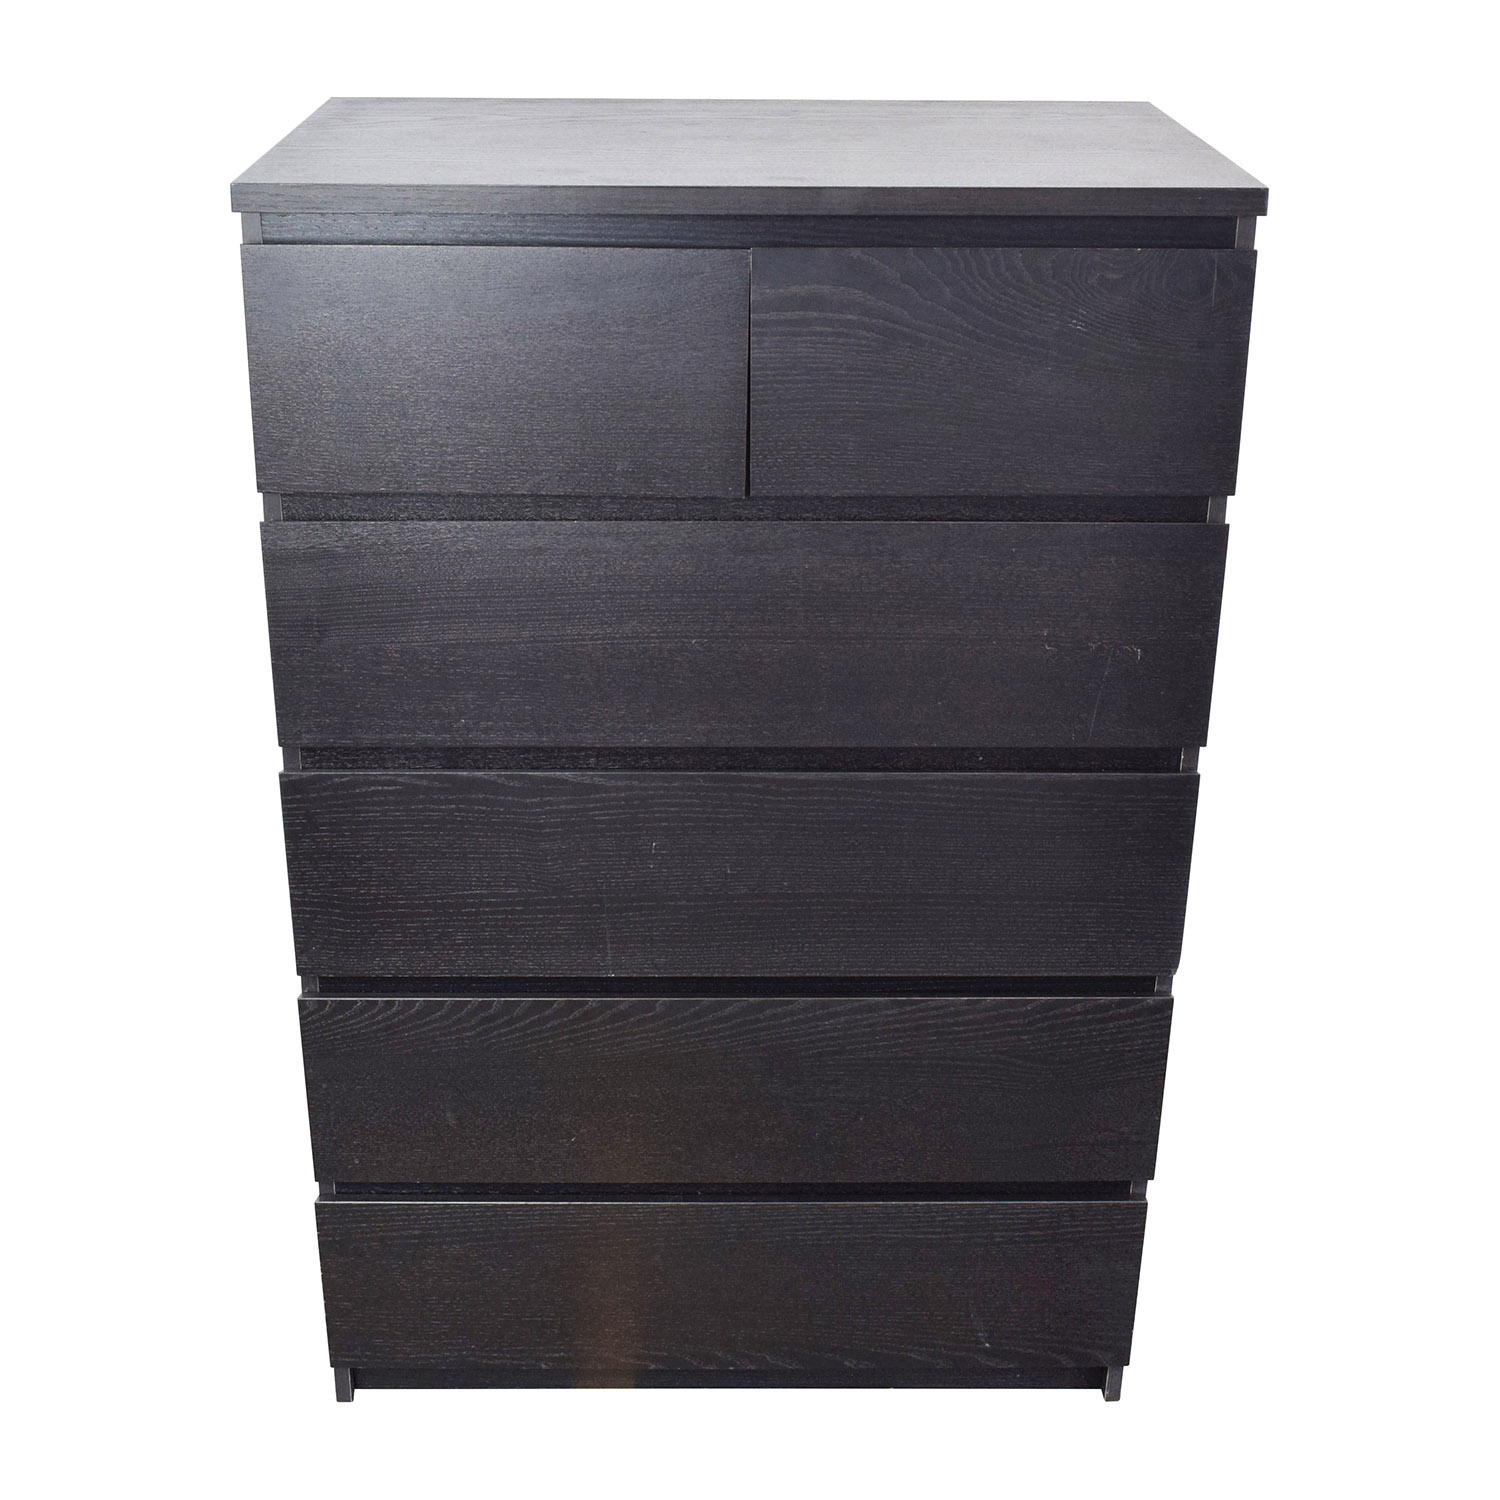 s gentlemans matison product gentleman of view modern hrqioaefoz drawers drawer tall dresser chest